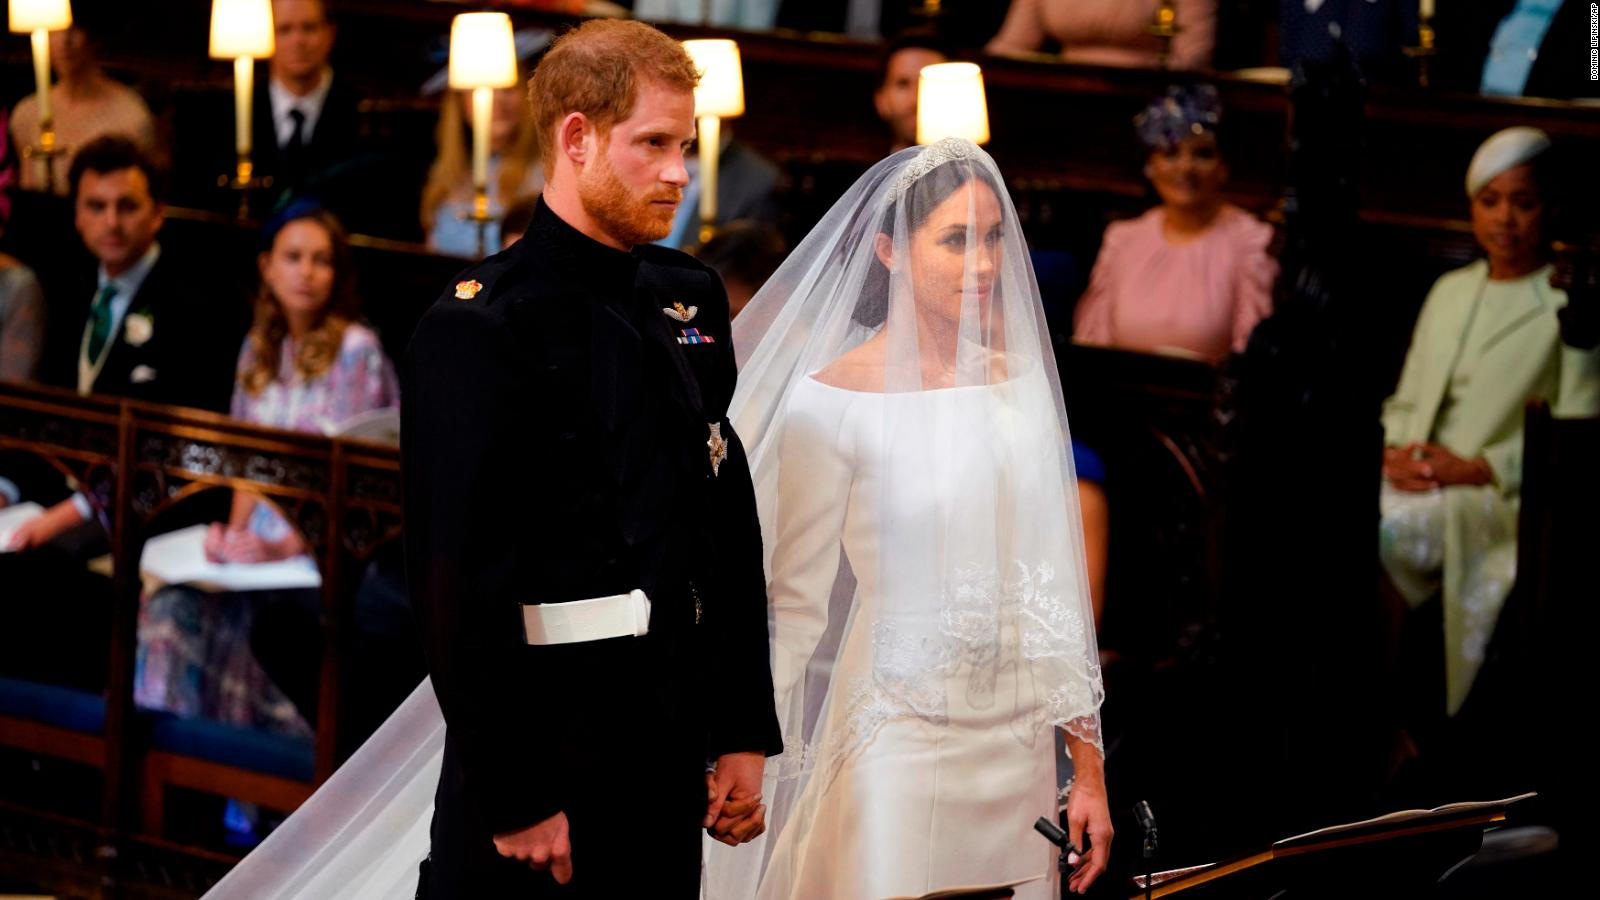 Meghan Wears Stella Mccartney Dress To Evening Royal Wedding